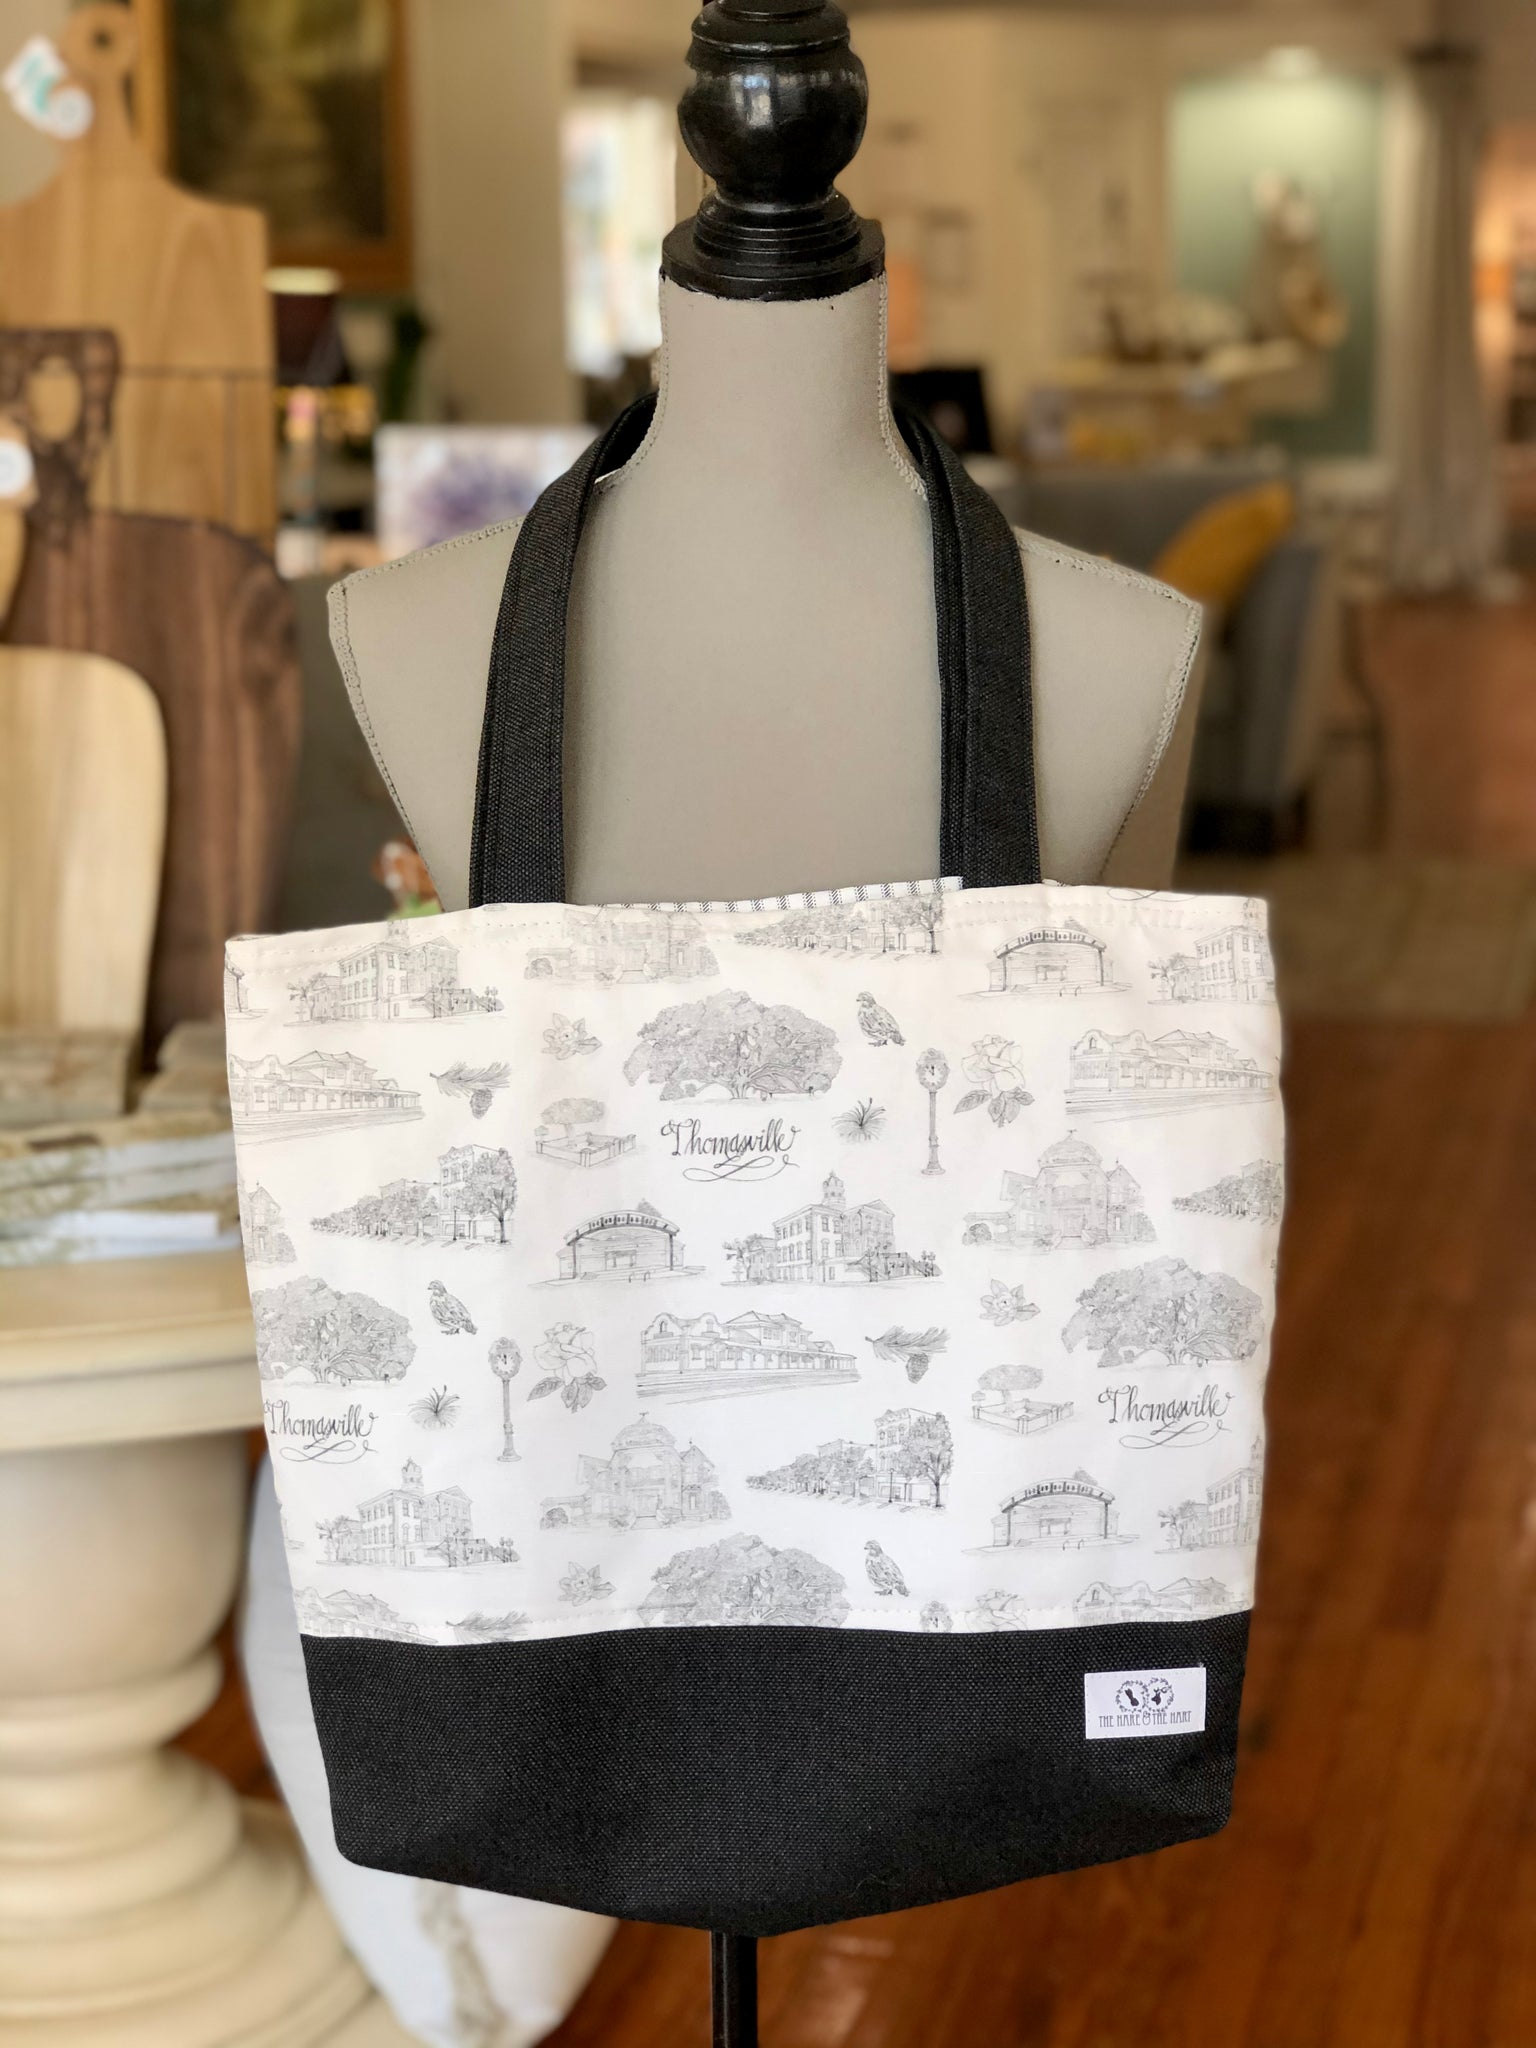 There is a black and white Toile of Thomasville tote bag hanging from the neck of a mannequin. The bottom of the bag and the handles are made of black fabric.